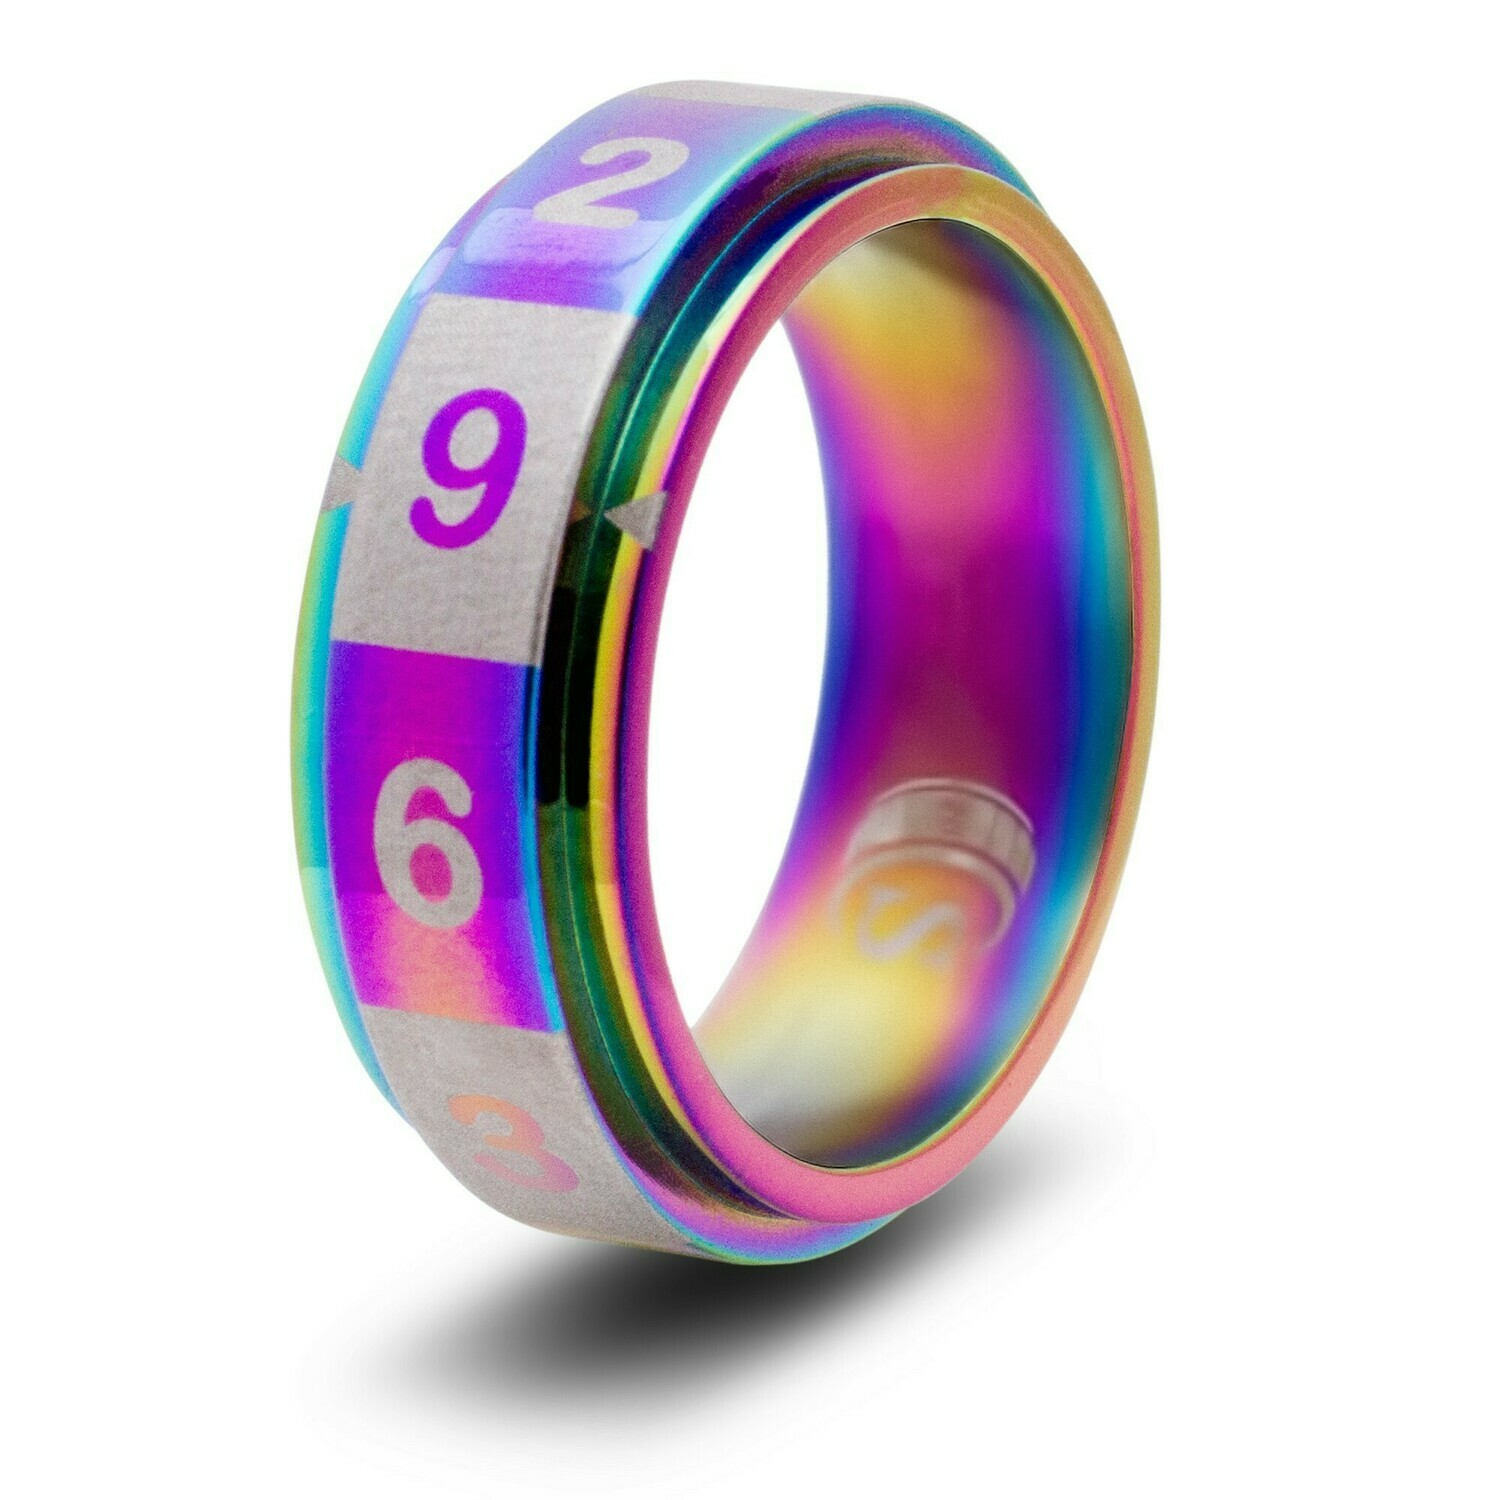 10-sided (D10) Dice Random Number Spinner Ring - Rainbow, Black, Blue, or Gold!